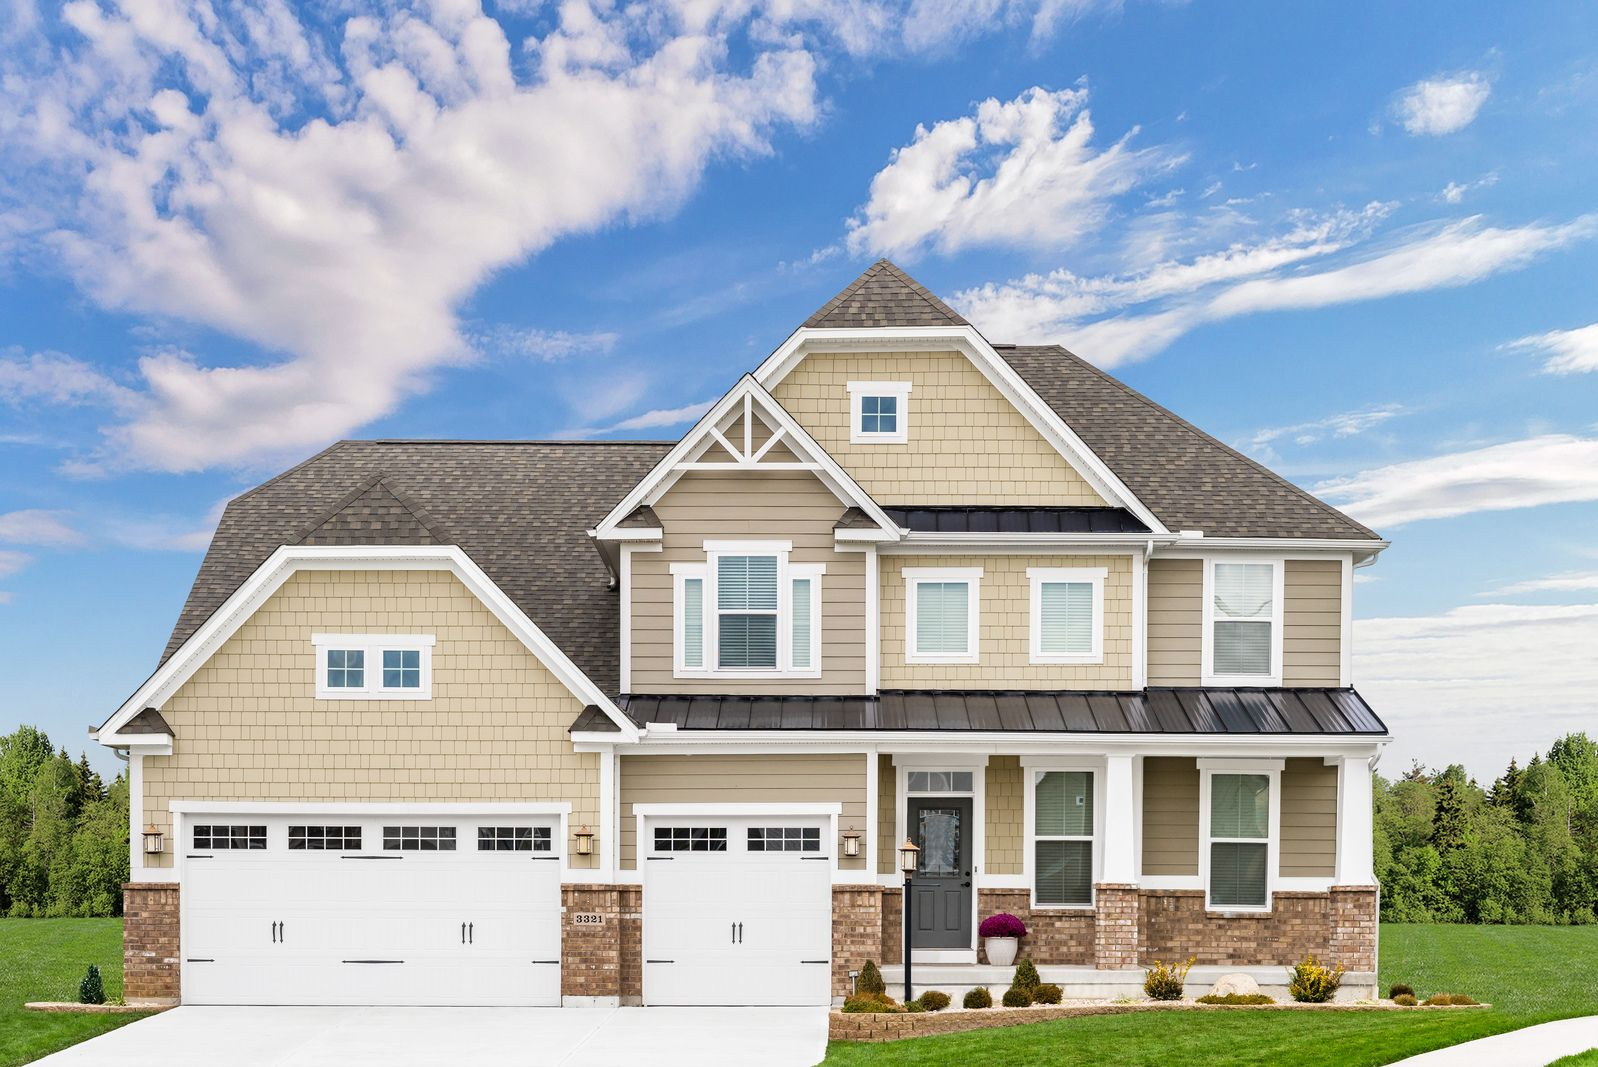 JOIN THE VILLAGES AT QUARRY VIP LIST TODAY:Ranch & 2-story golf course homes. 15-year tax abatement—low $200s!3-car garages available, community pool, clubhouse, & included lawn/snow care! Minutes to I-77 & Belden.Schedule your visit today!